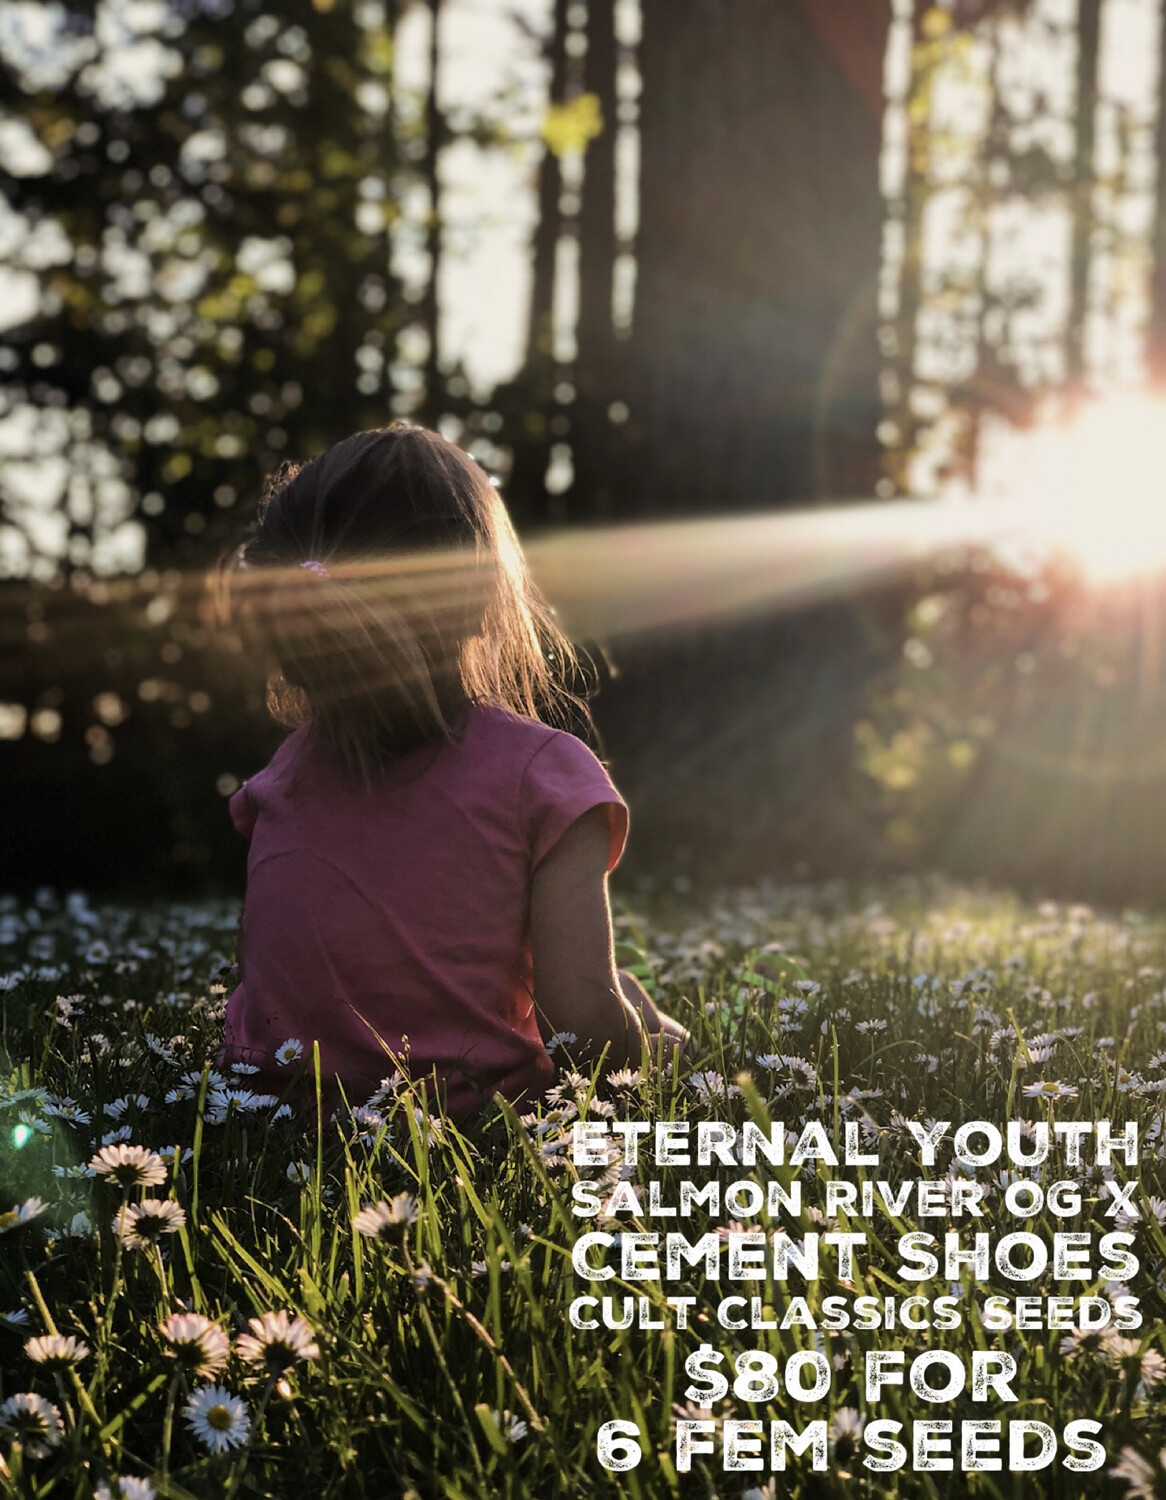 Cult Classics Seeds Eternal Youth